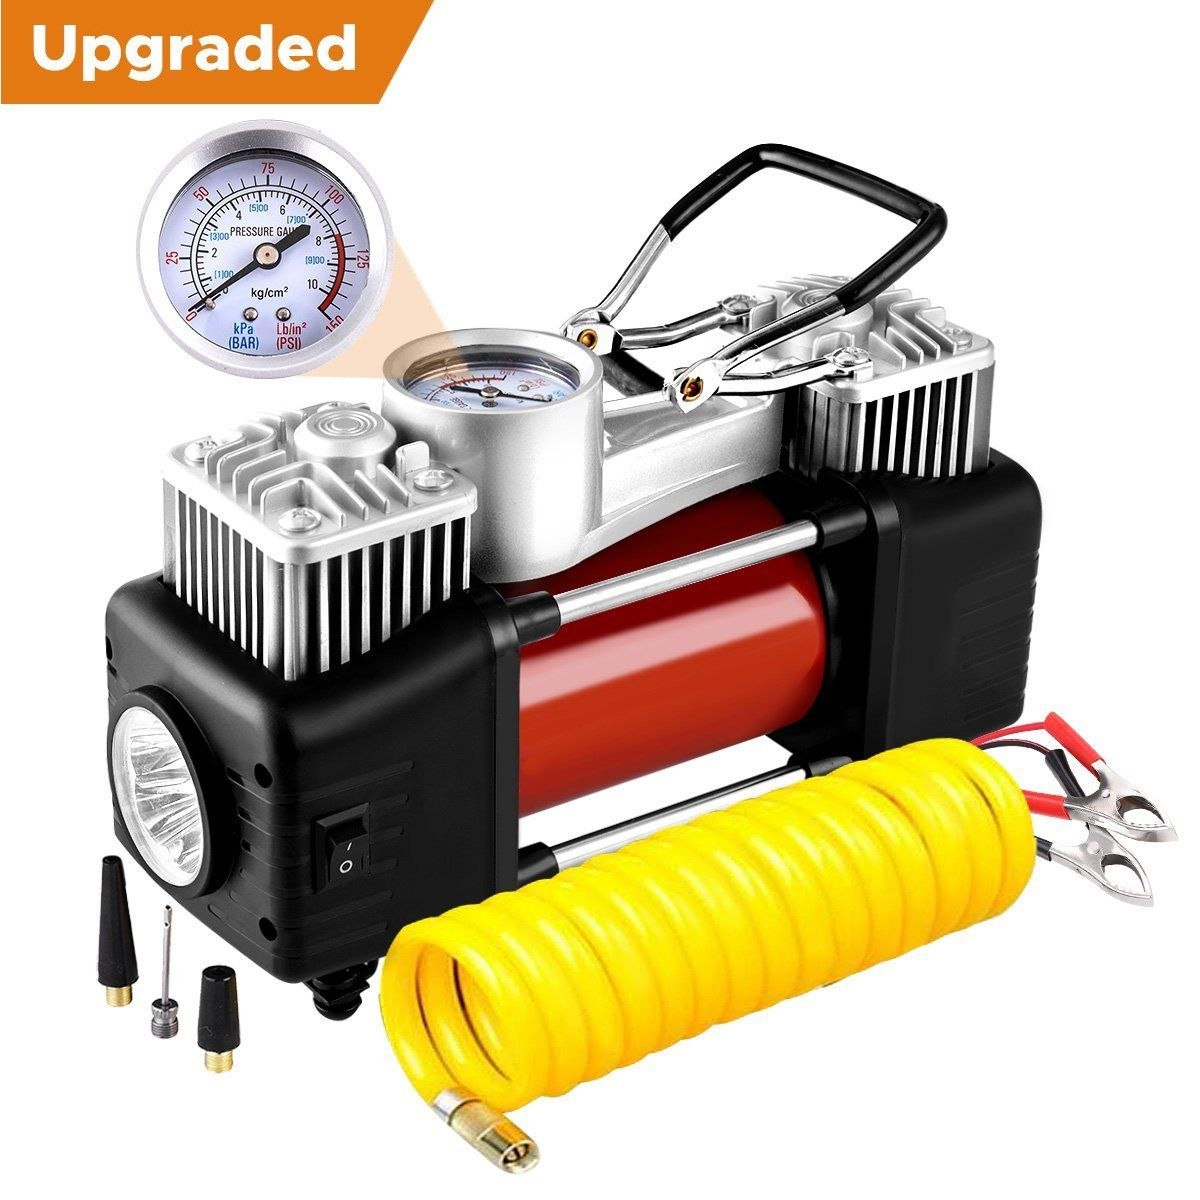 The Audew 2Cylinder Portable Air Compressor A Review